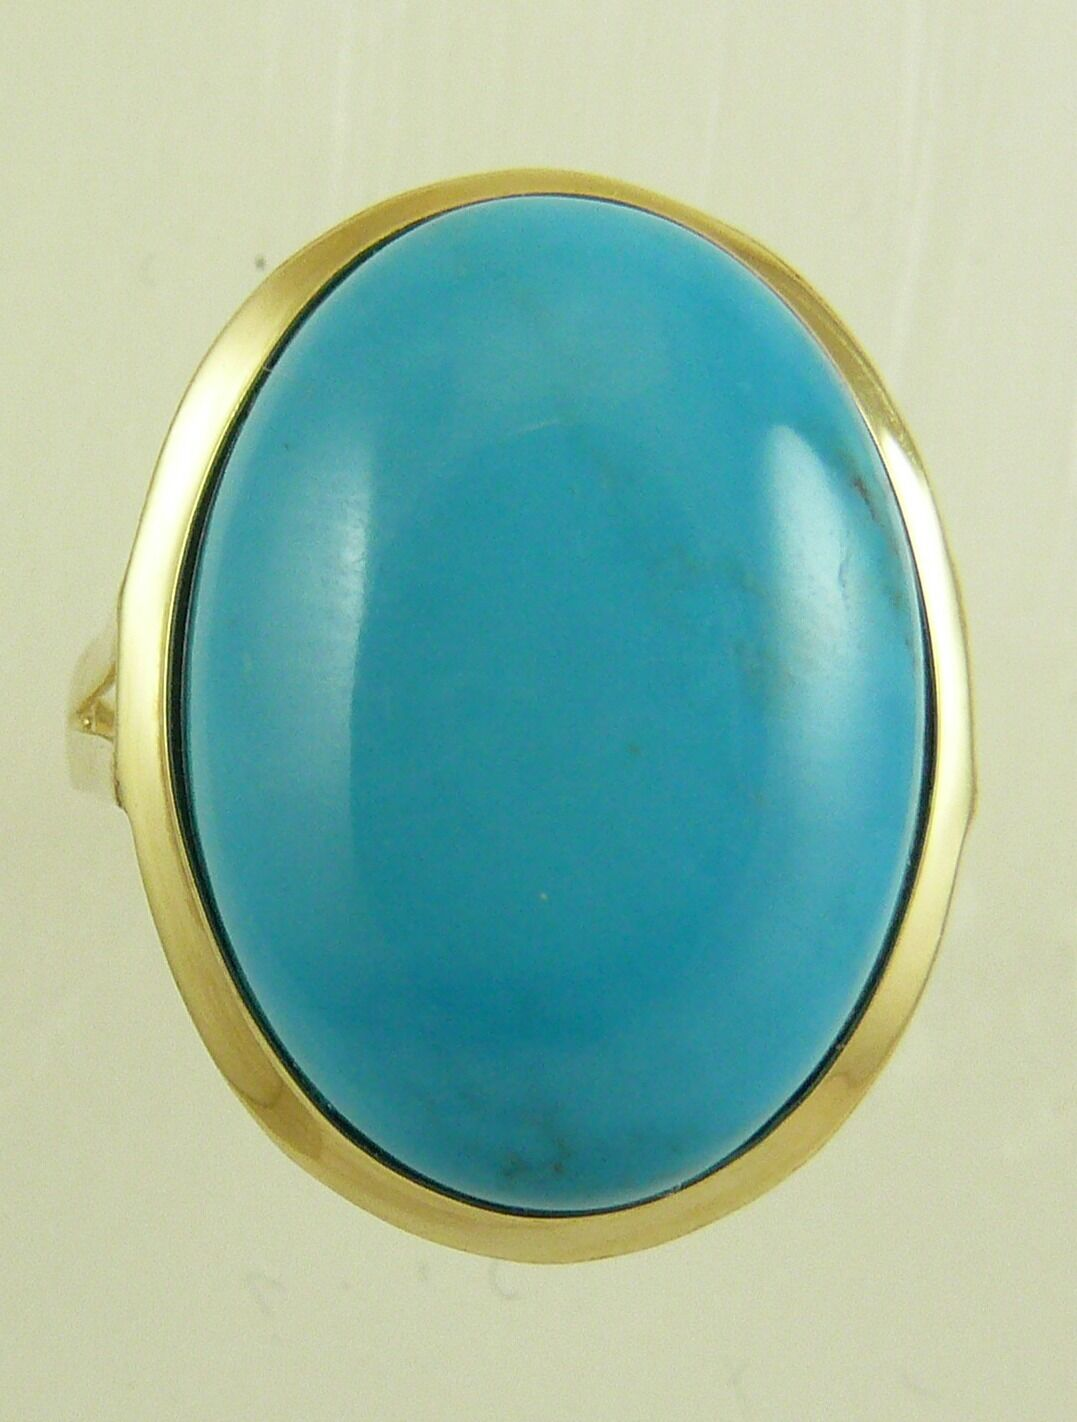 Reconstituted bluee 13 mm x 18 mm Turquoise Ring With 14k Yellow gold, Size 7 1 4